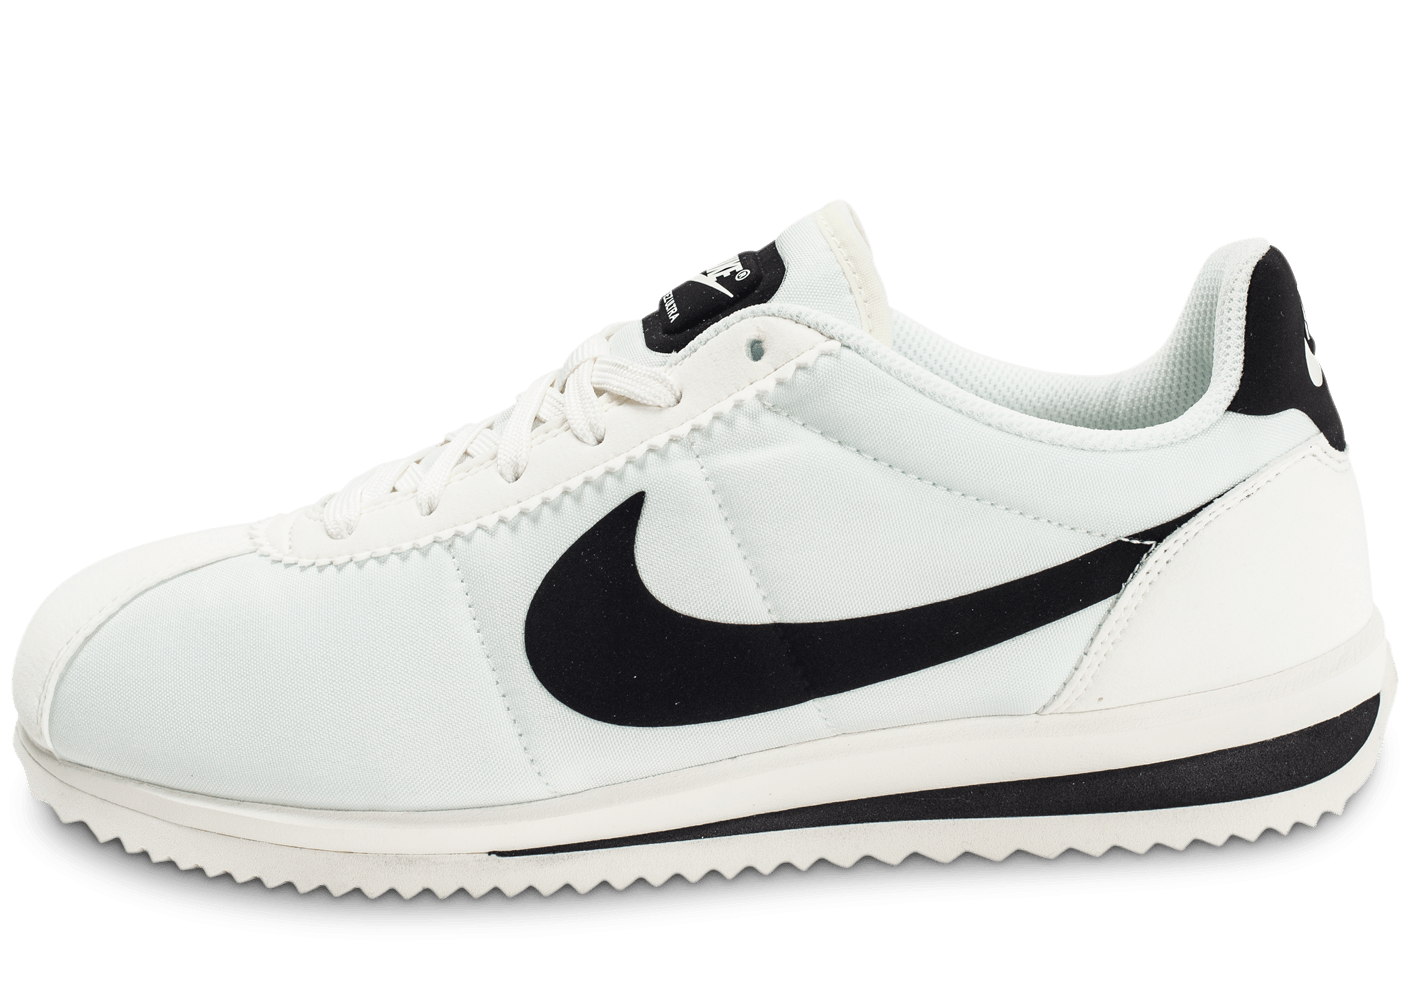 Nike Chaussures achat Homme Cdiscount Cortez homme Pas Cher